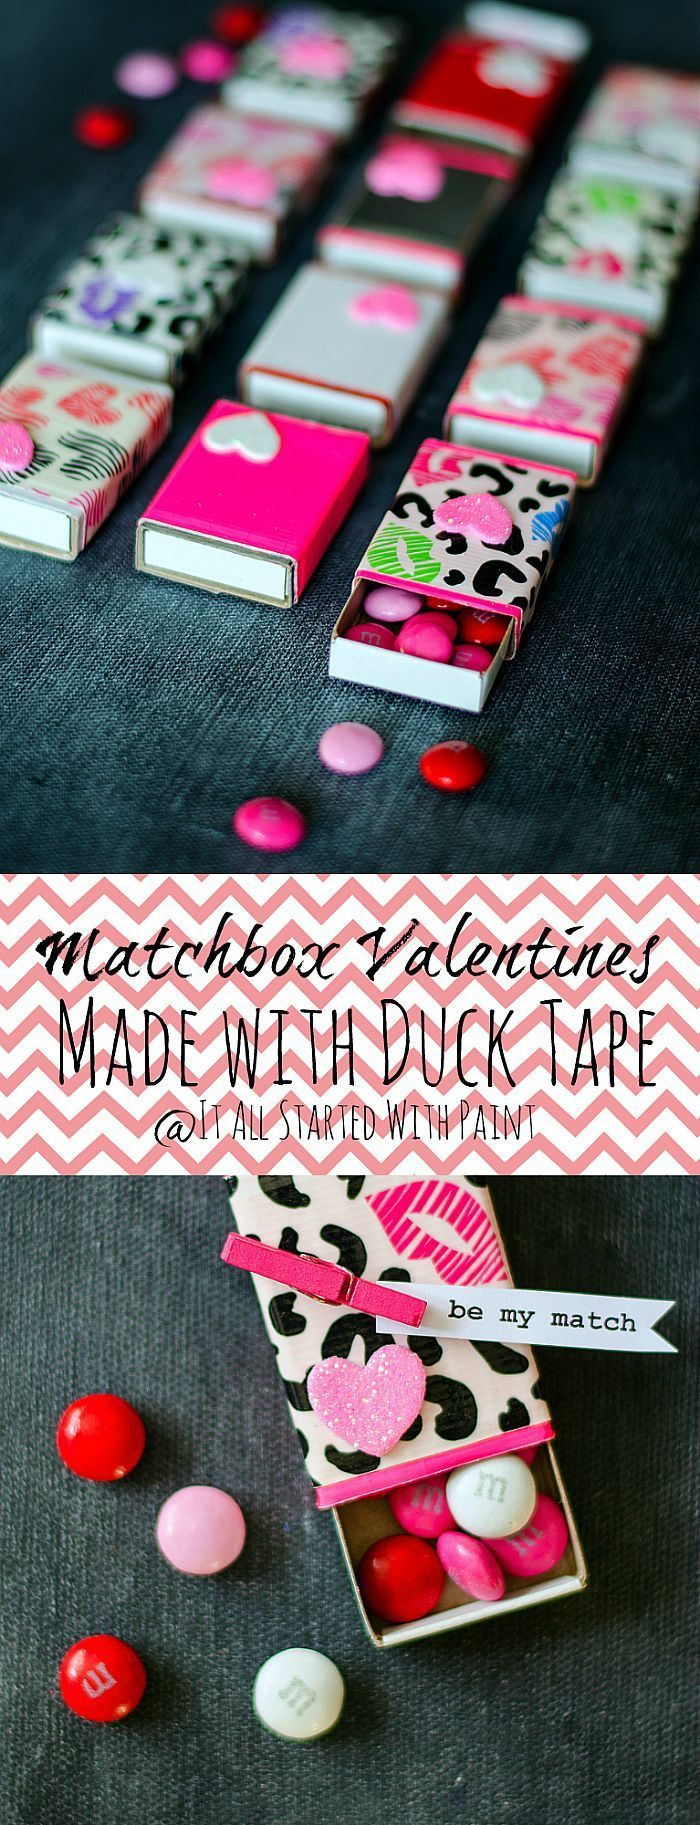 307f42e97c41da78ce85521482aac32c cute valentines day gifts valentine ideas - Matchbox Valentine made with Duck Tape #DuckValentine. You see hearts everywhere...